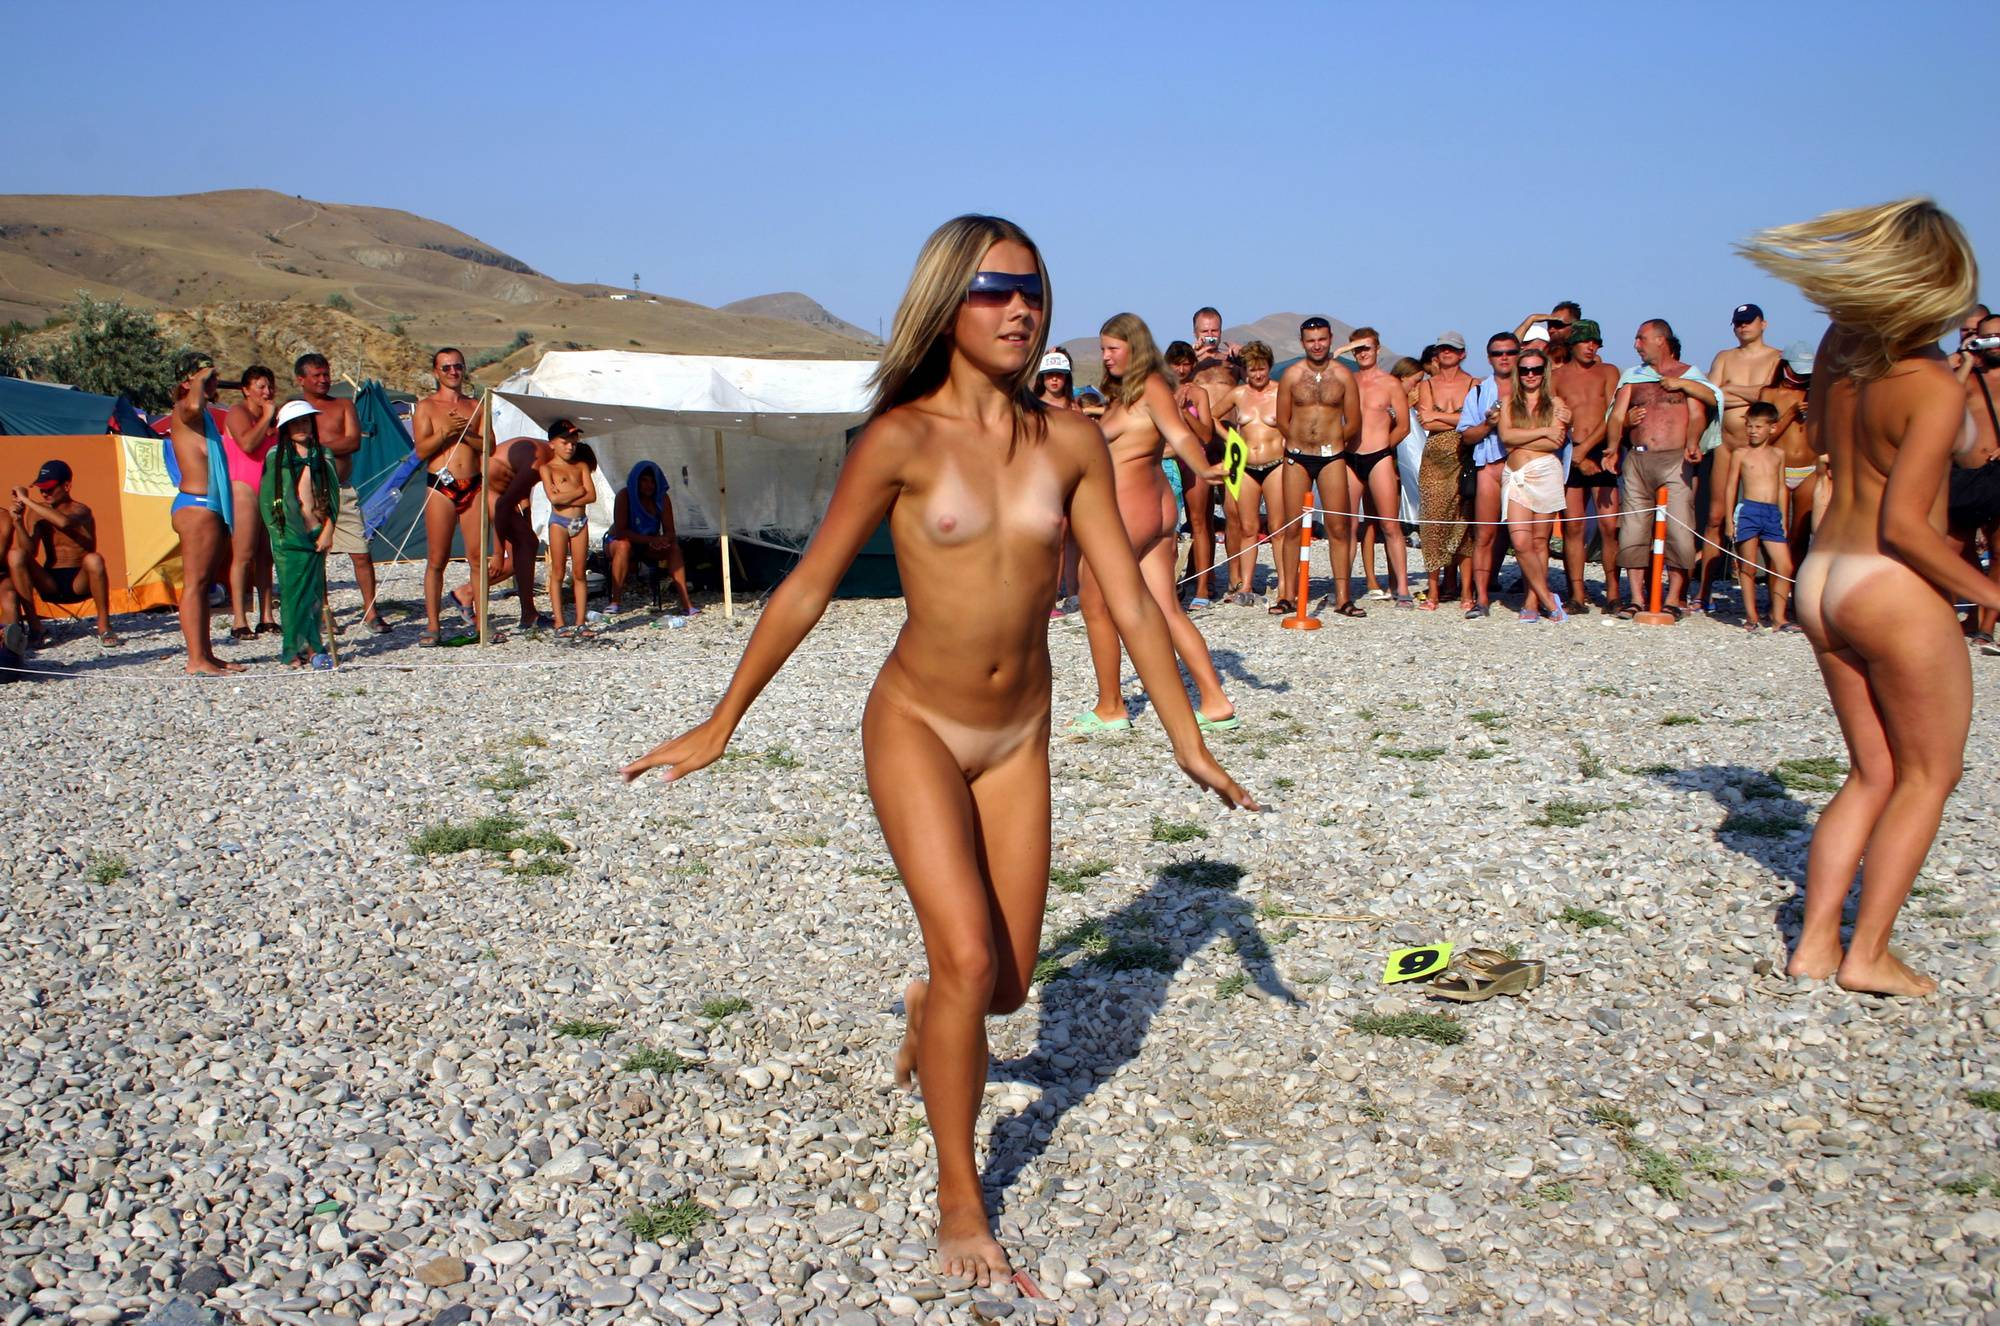 Pure Nudism Photos Pageant Walk and a Dance - 1